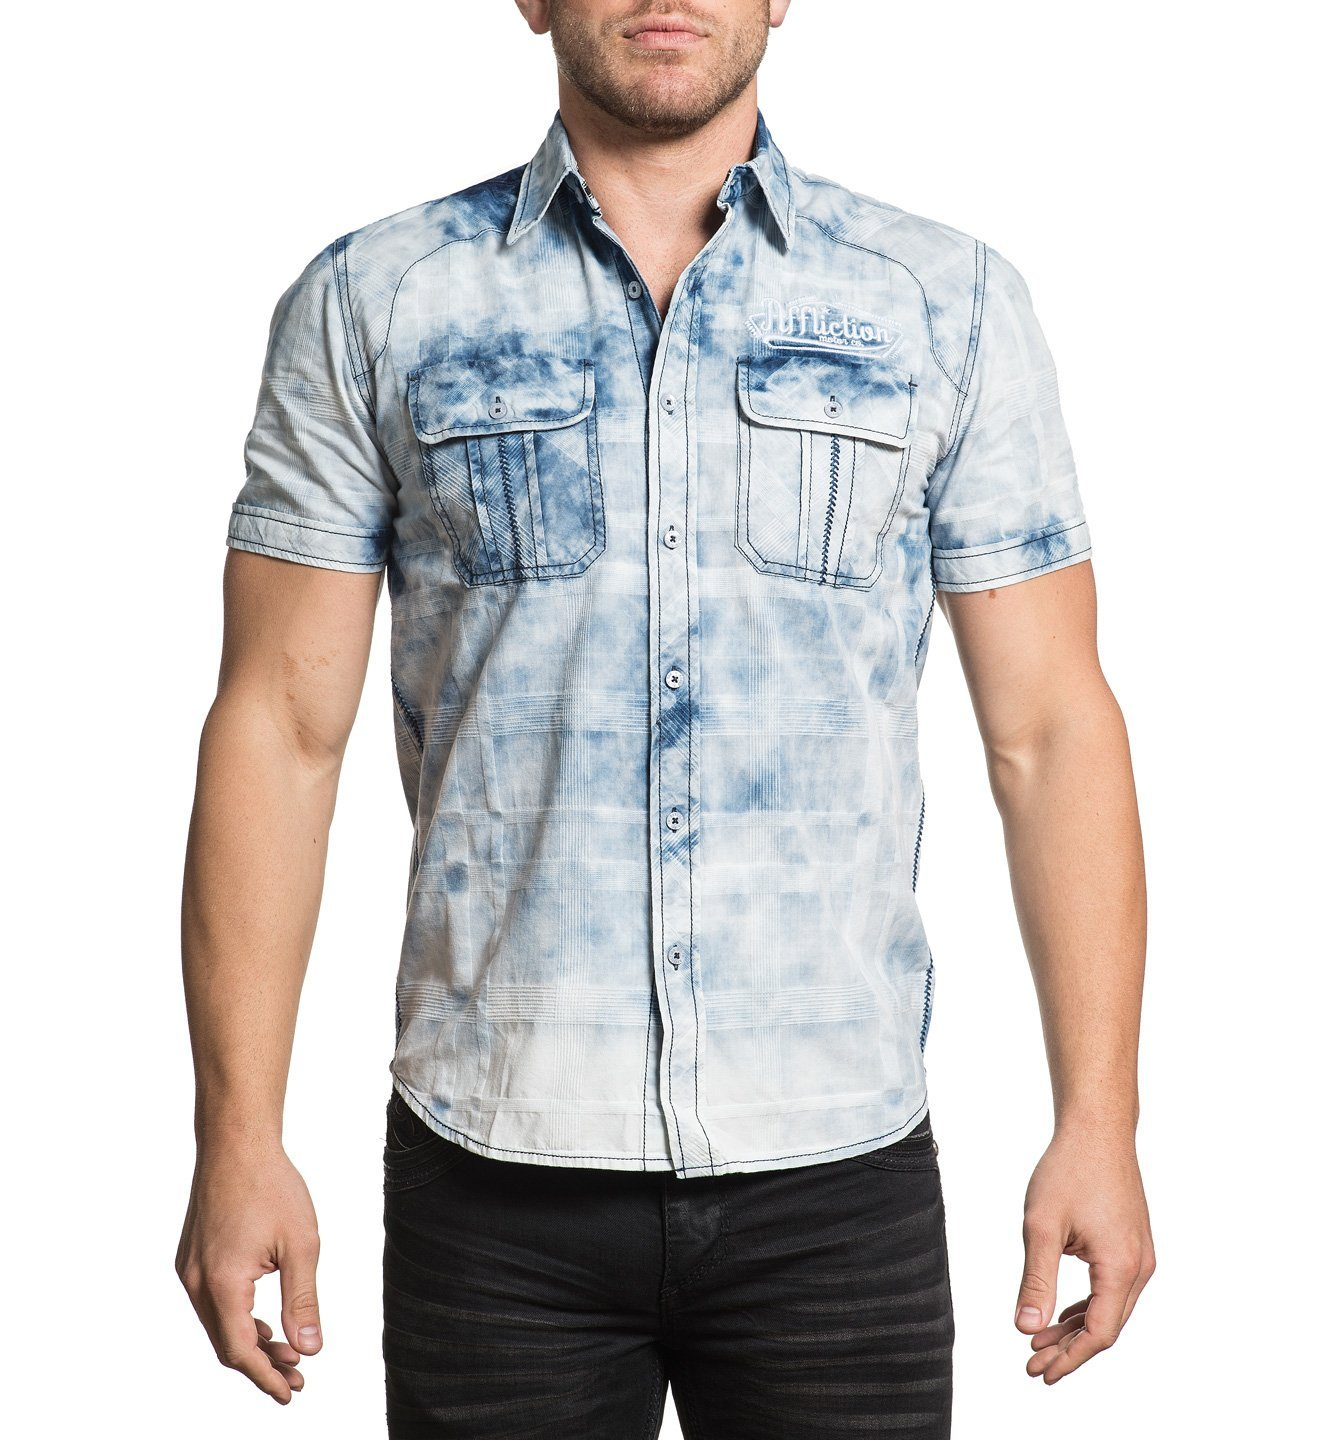 Idle - Mens Button Down Tops - Affliction Clothing